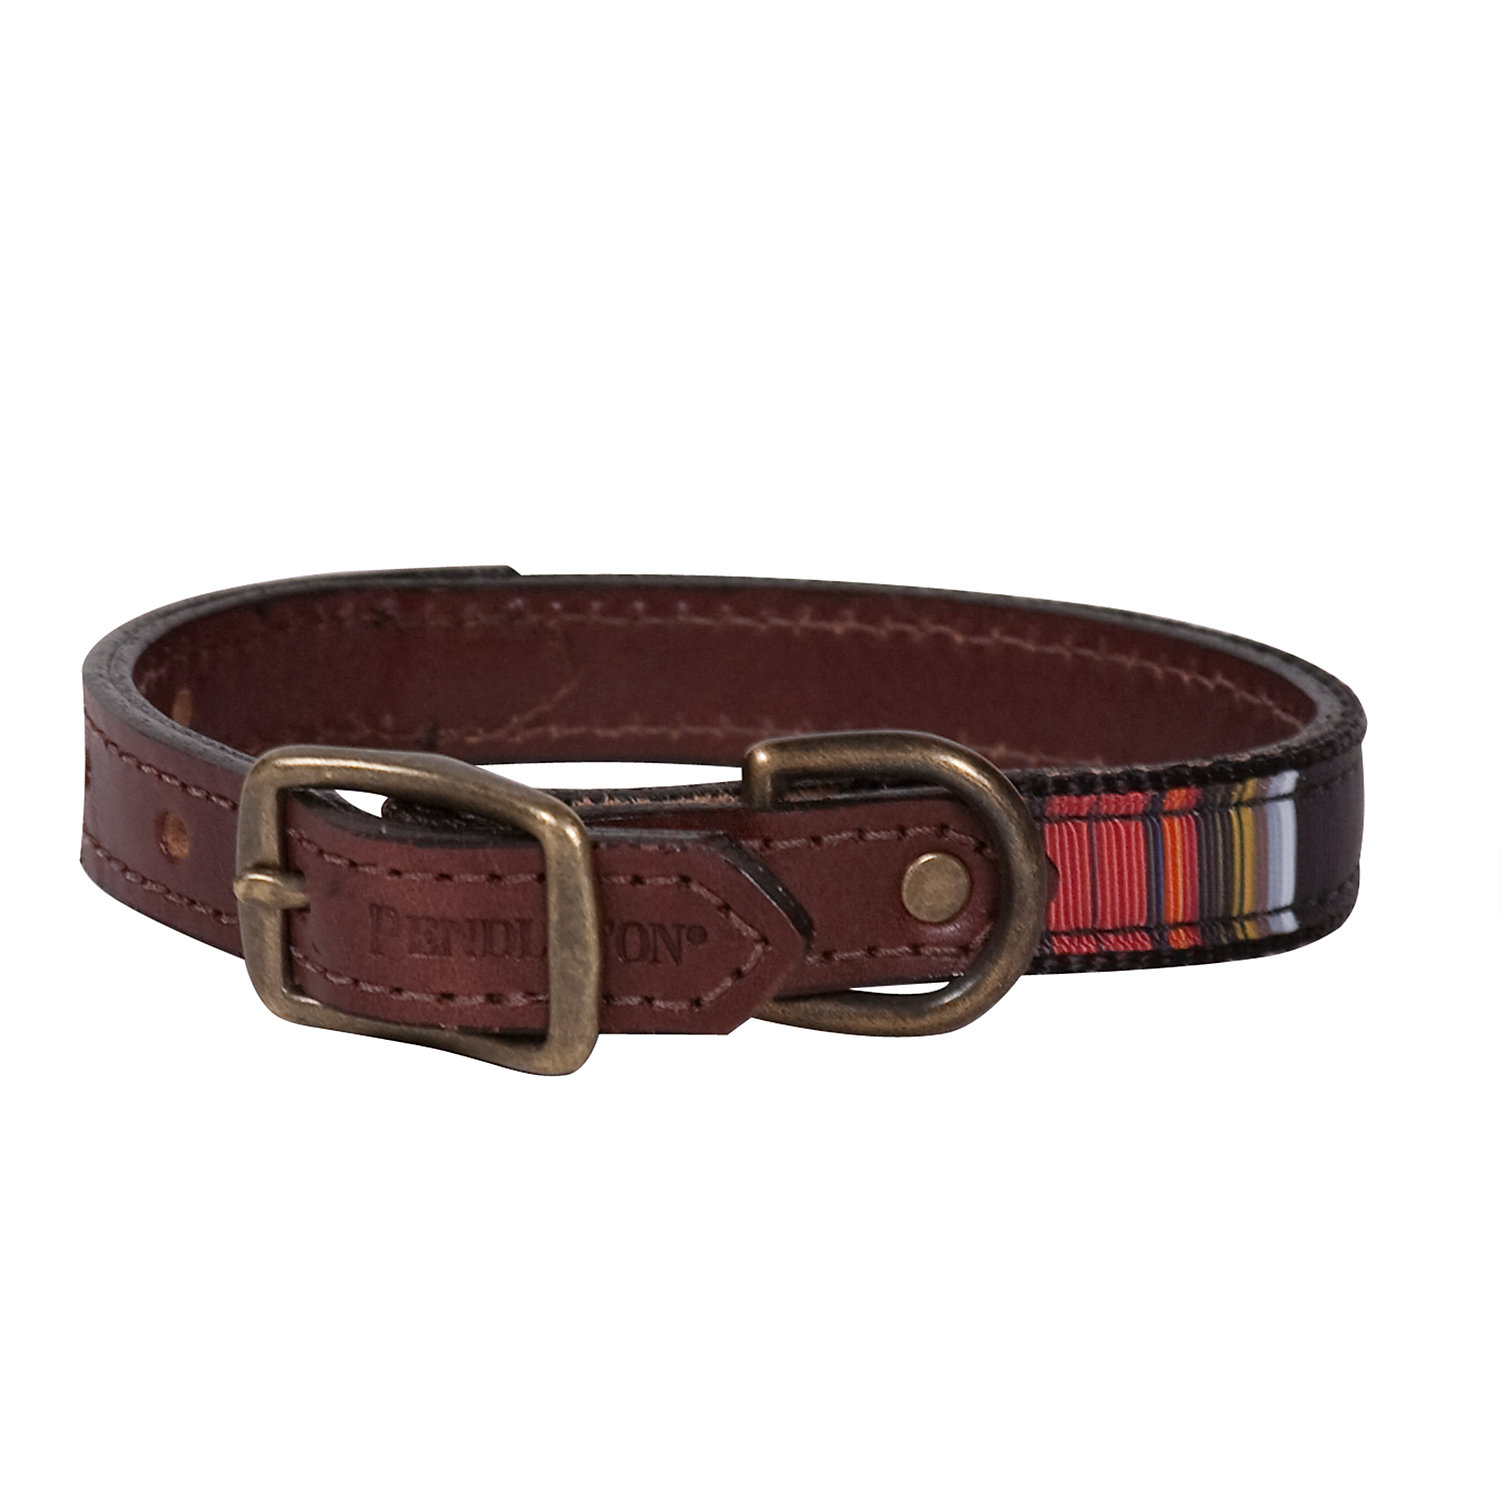 Pendleton Acadia National Park Explorer Dog Collar Medium